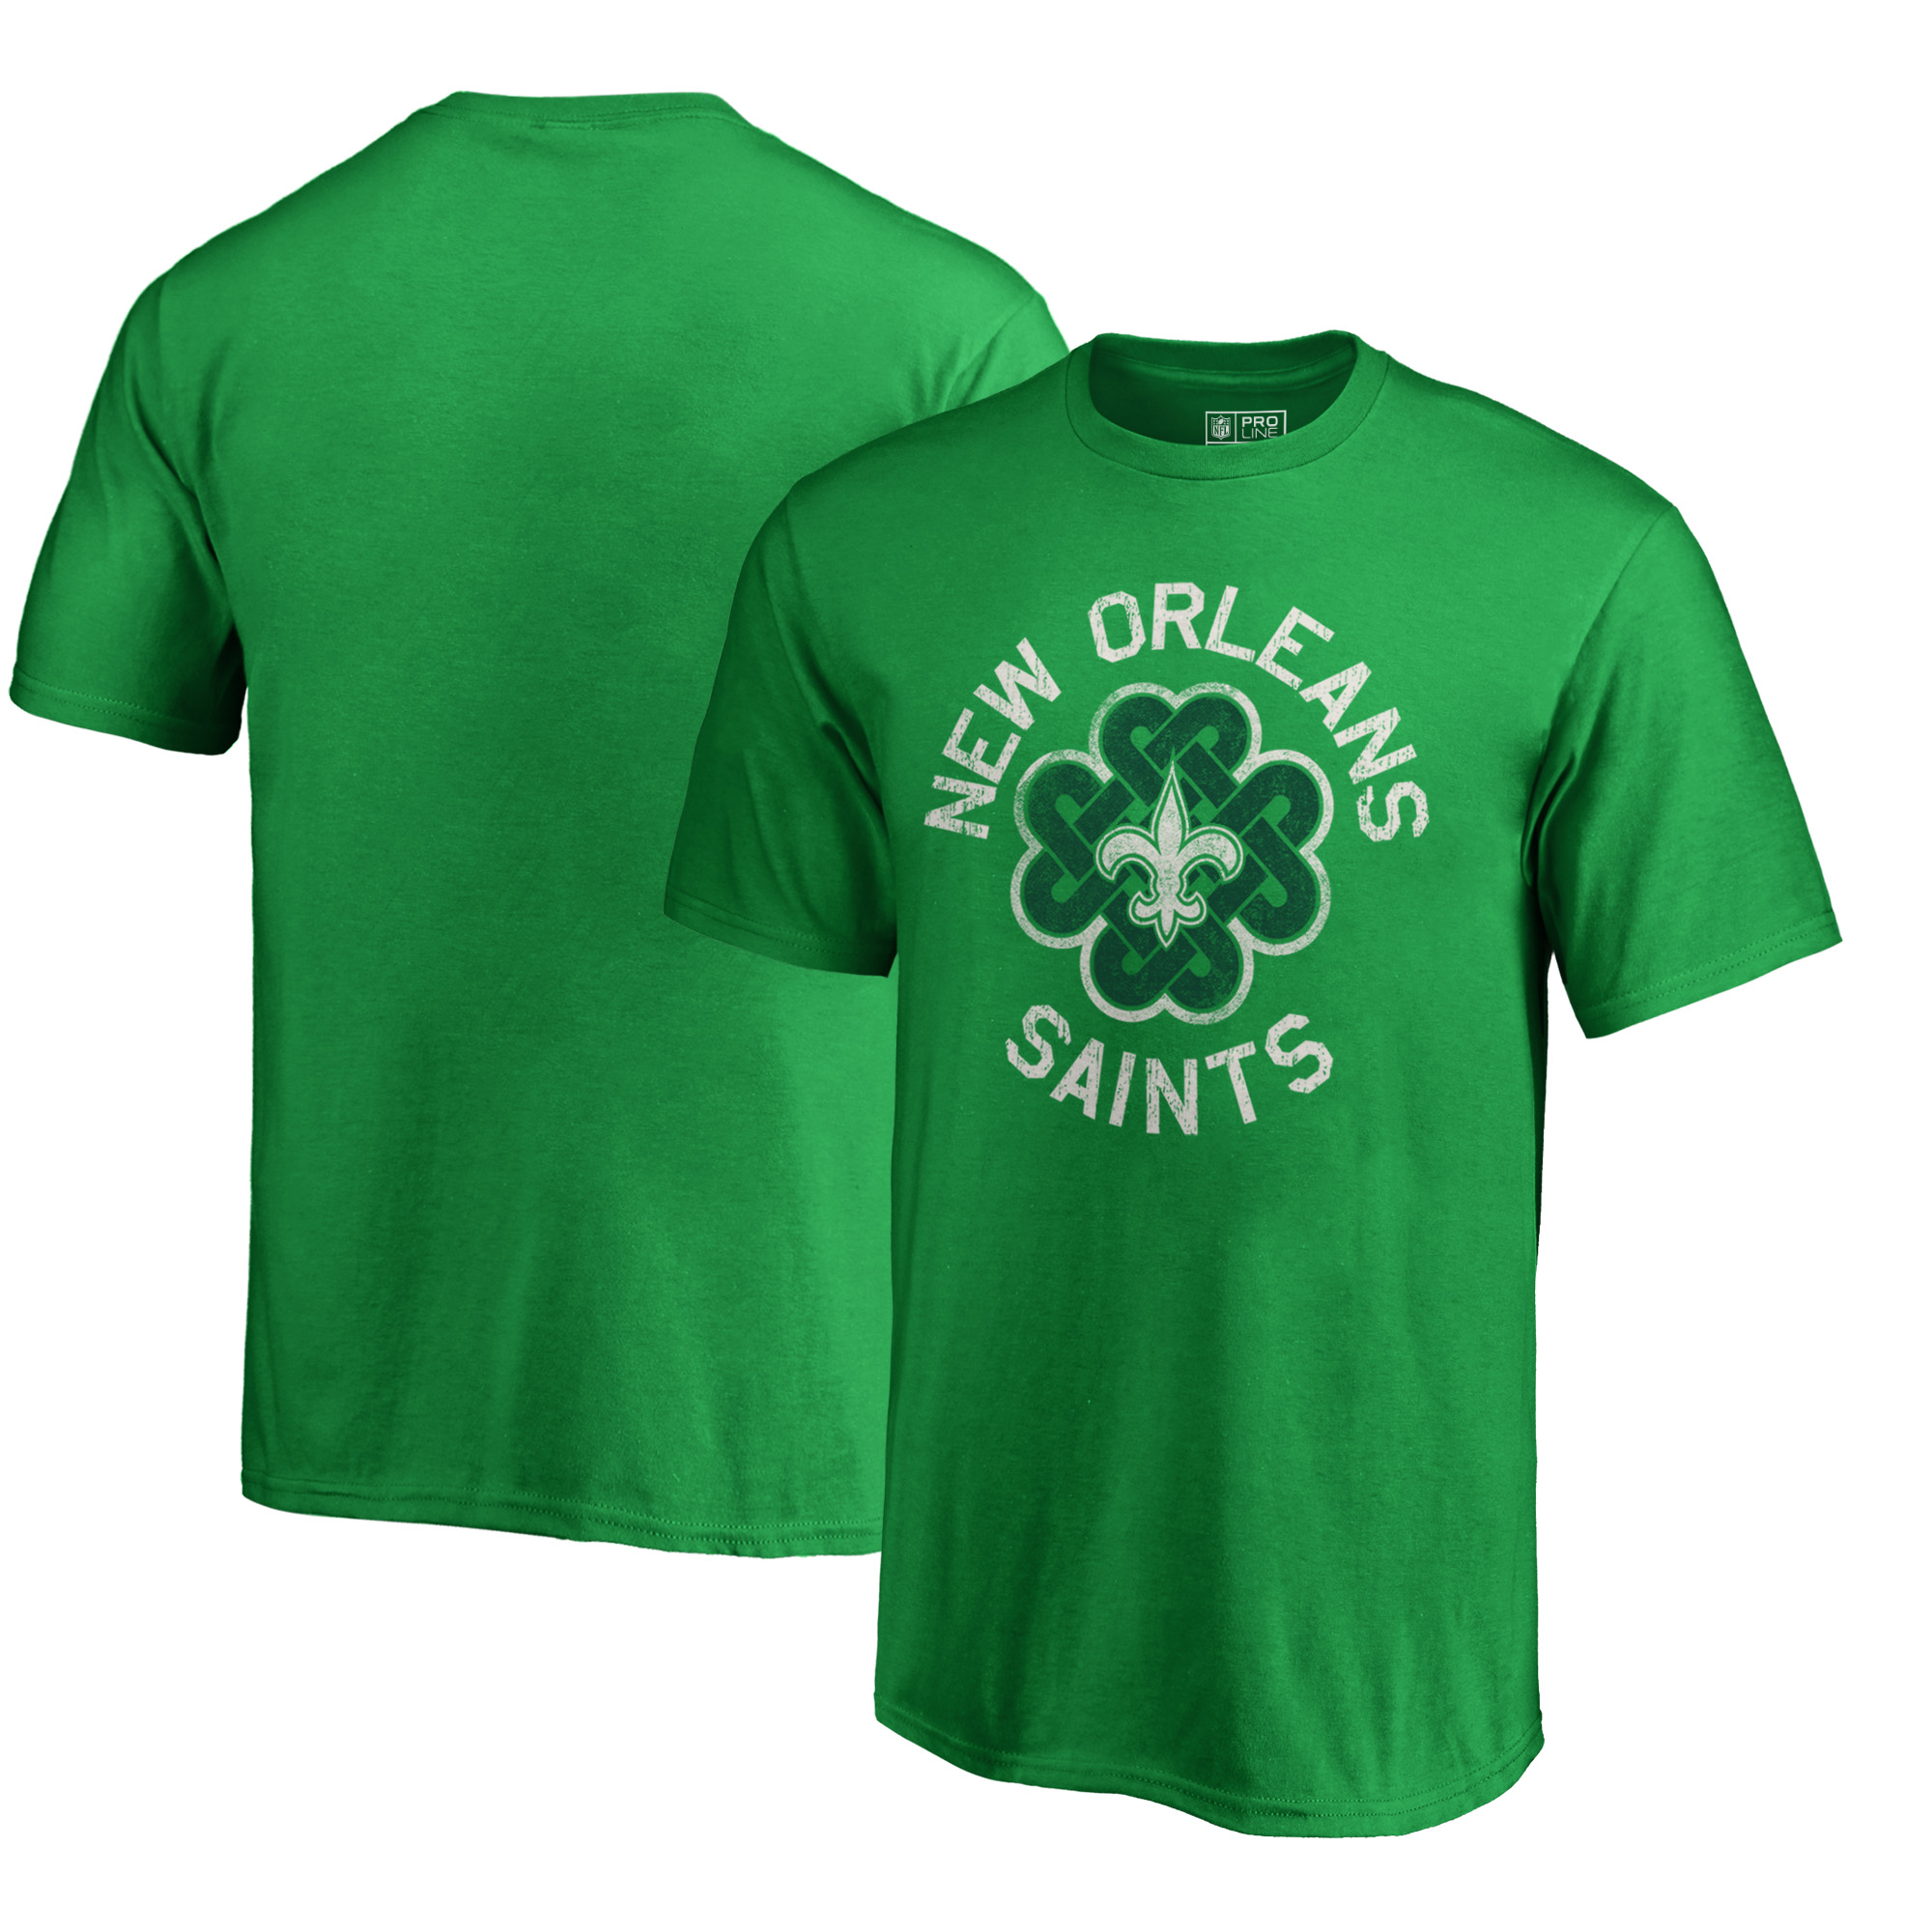 New Orleans Saints NFL Pro Line by Fanatics Branded Youth St. Patrick's Day Luck Tradition T-Shirt - Kelly Green